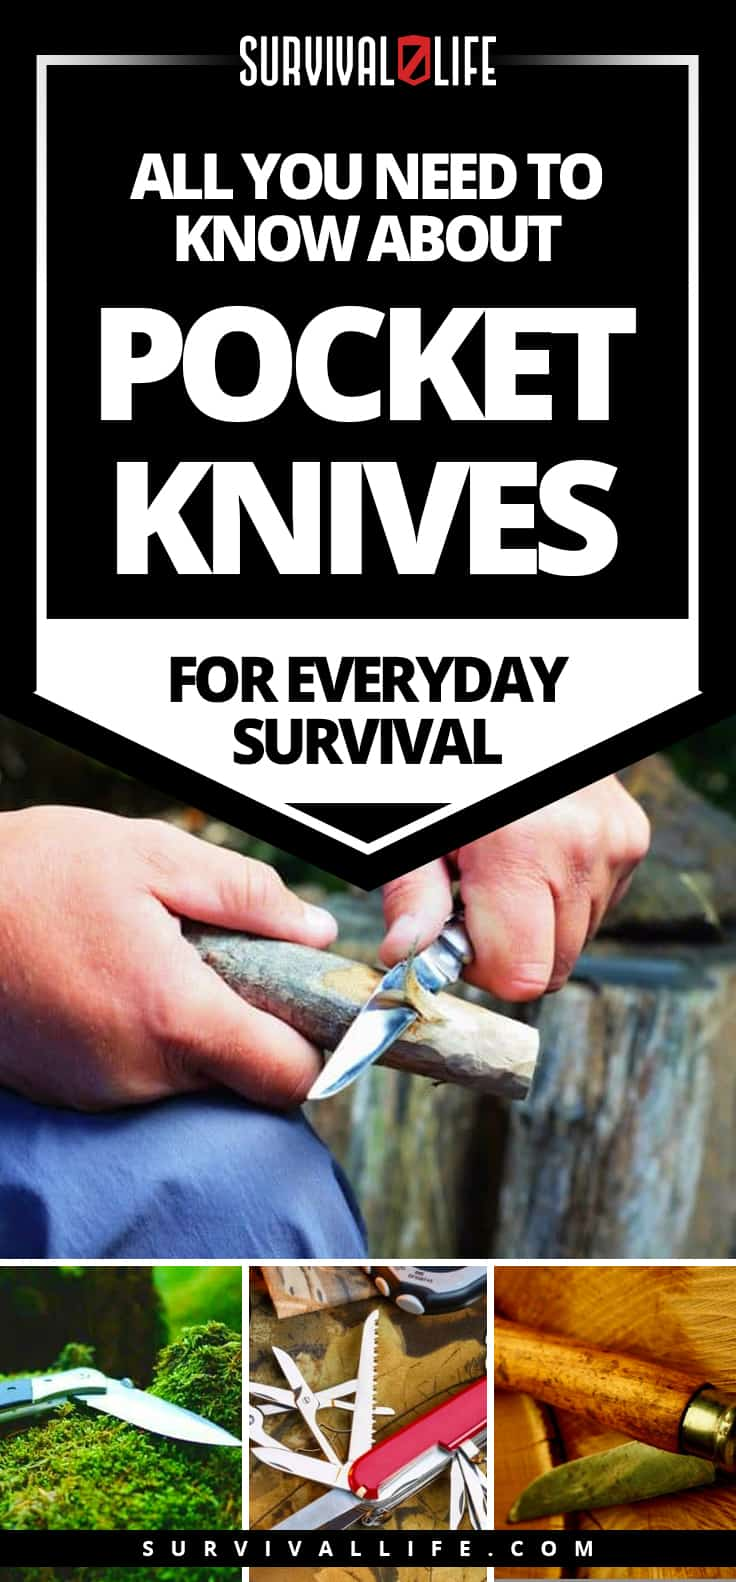 All You Need to Know About Pocket Knives For Everyday Survival